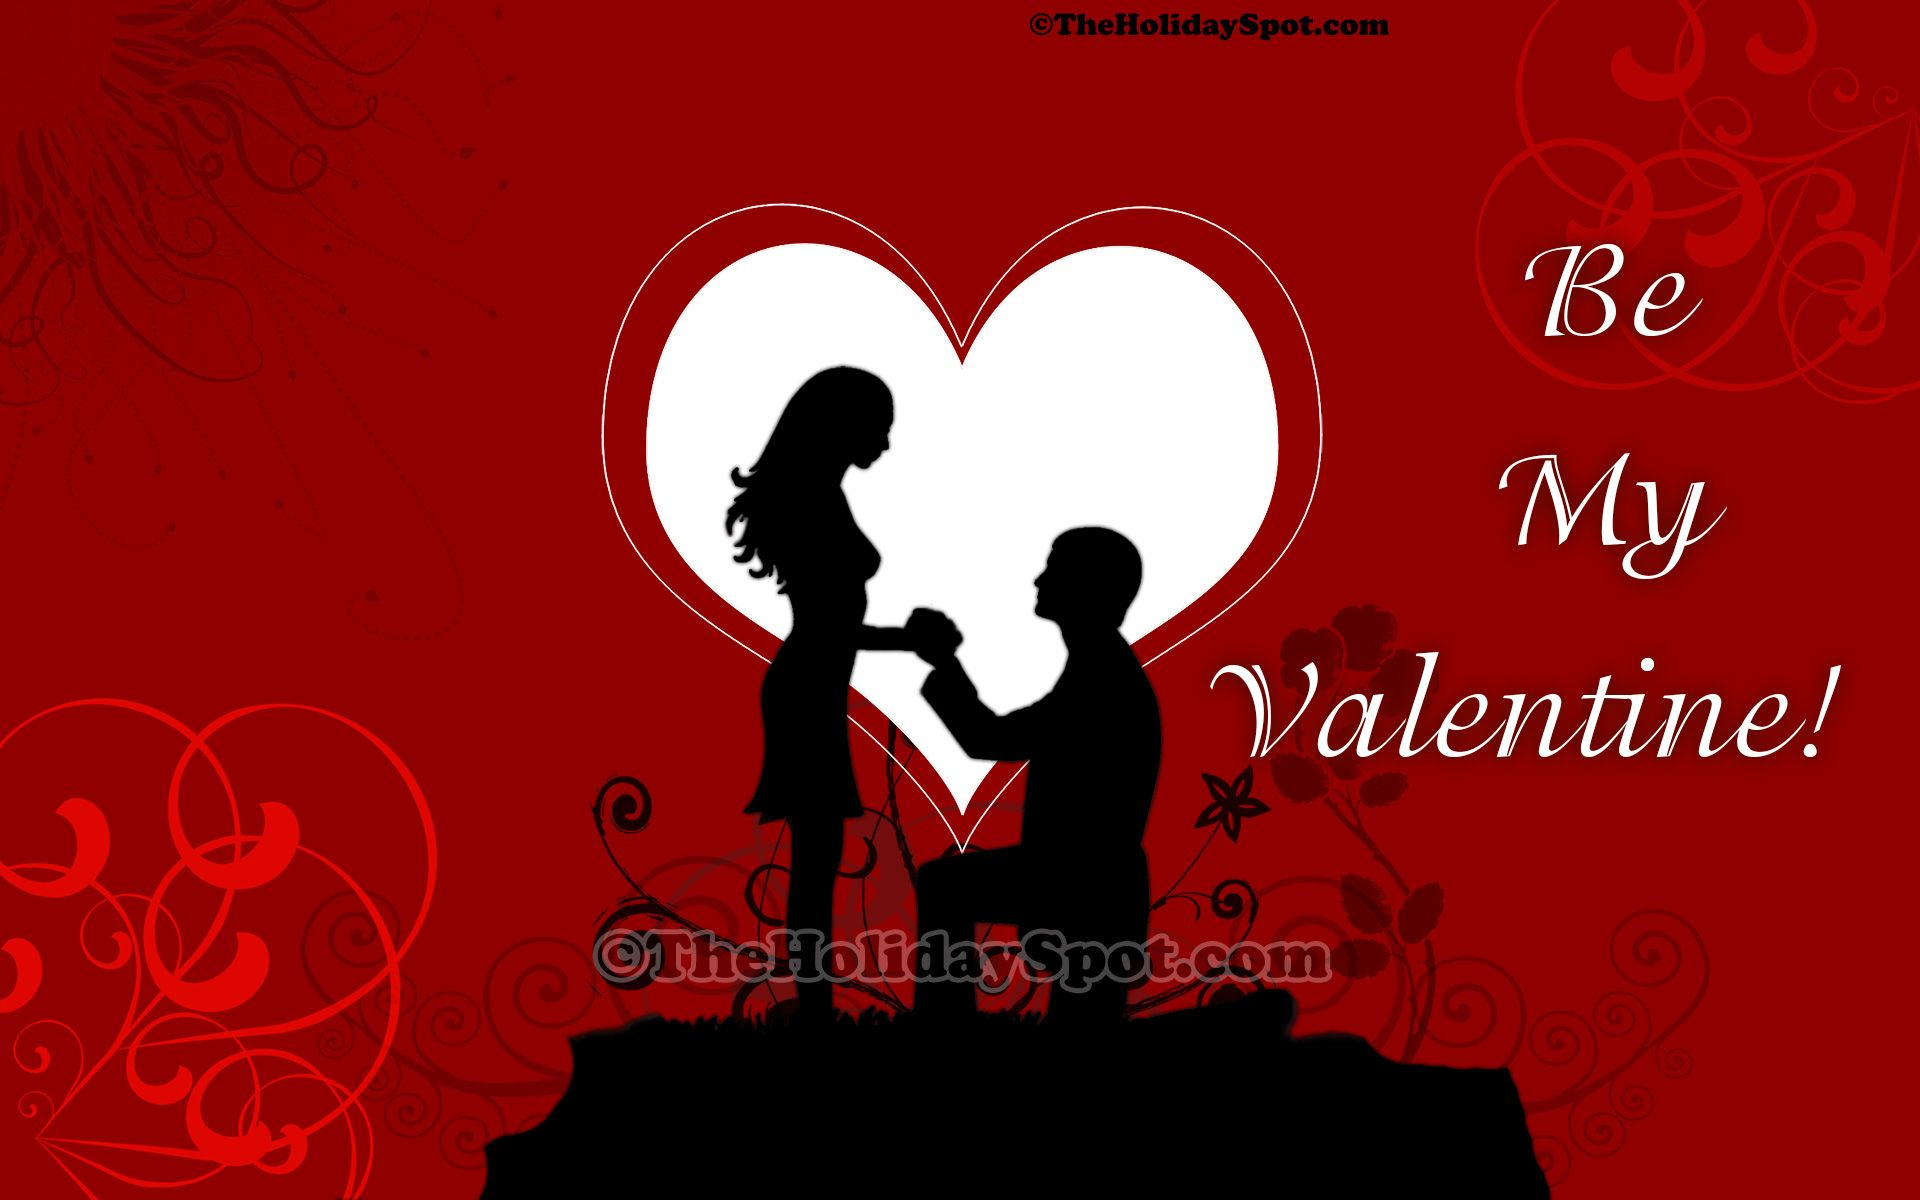 HD Quality Valentine Images Of Love Wallpapers For